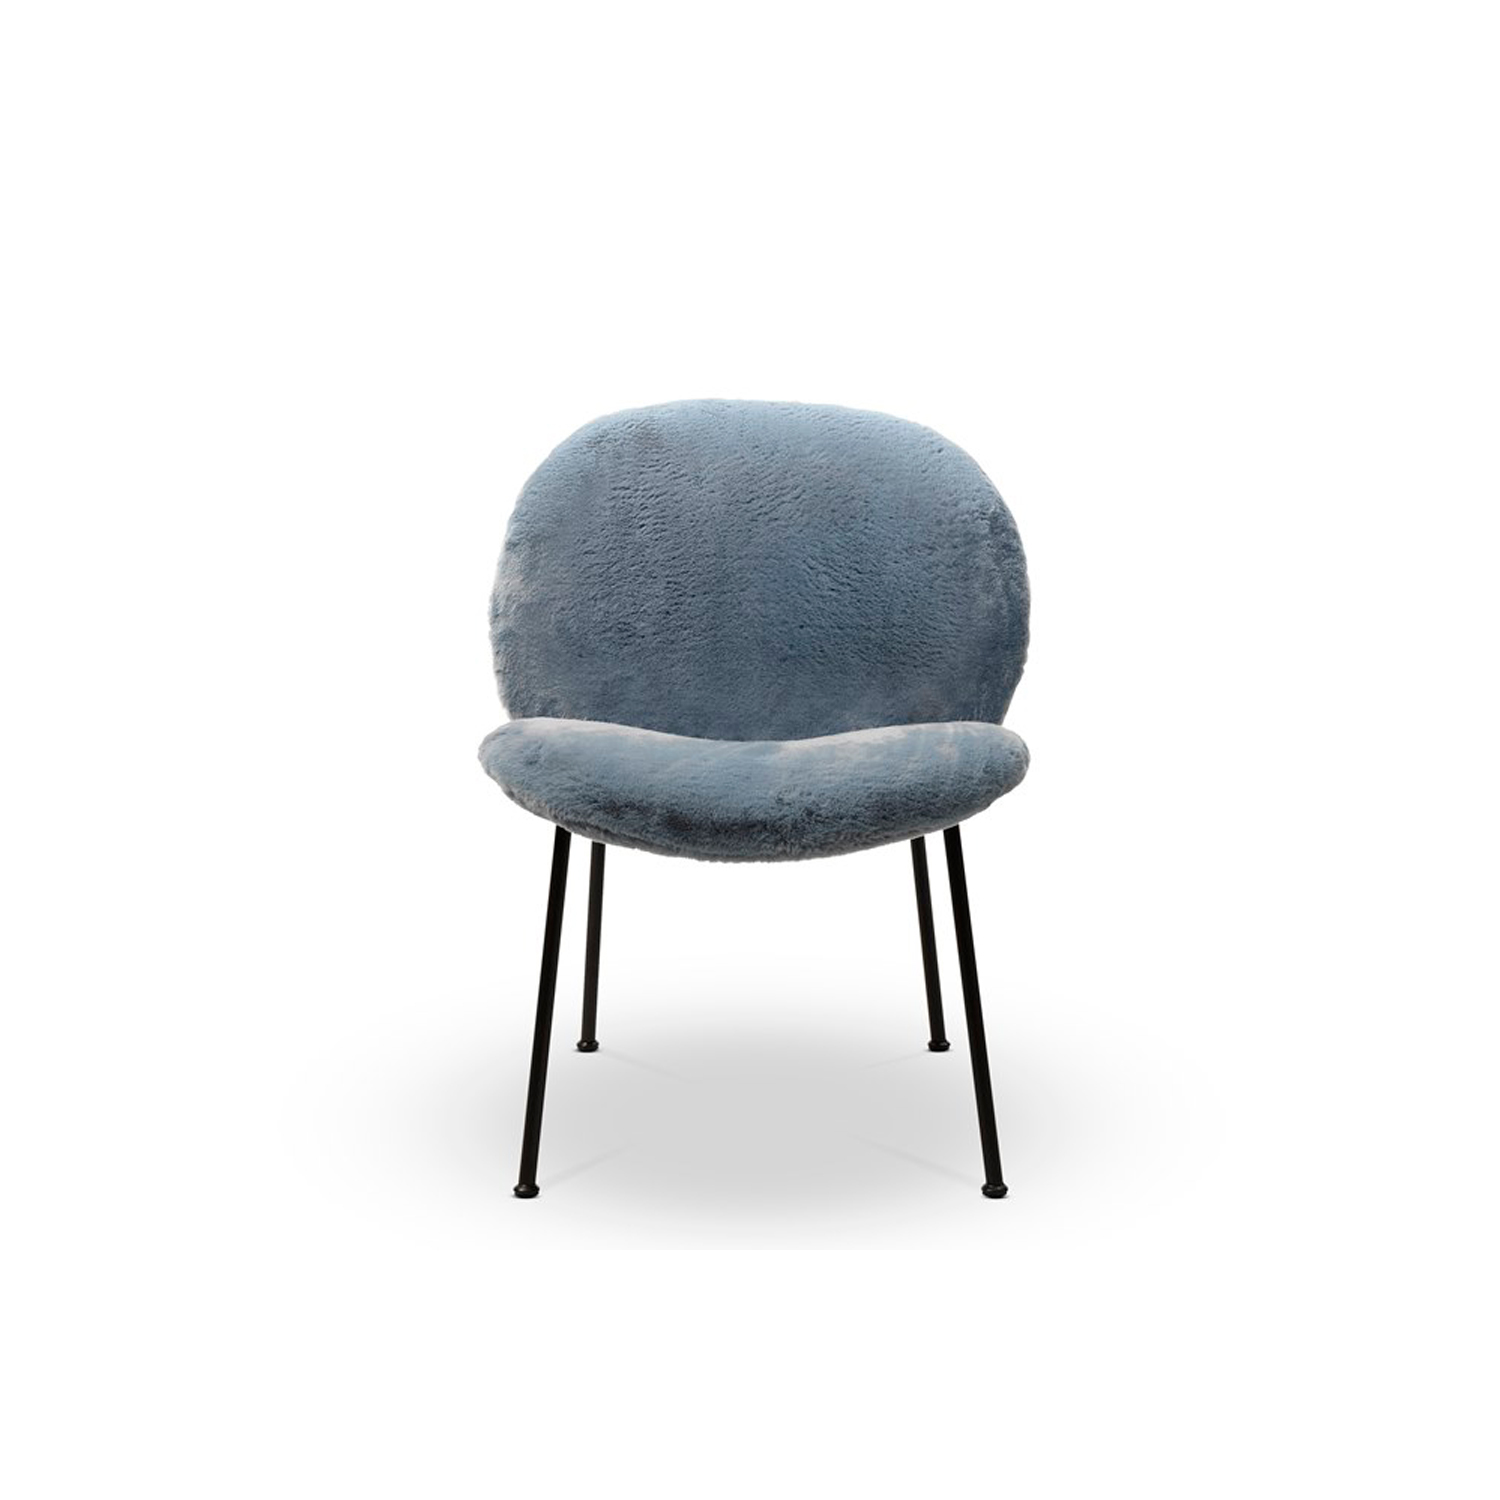 Ola Easy Chair - Ola originates from a simple idea but at the same time represents a complex concept – a welcoming arm chair created utilising four individual curved sheets. Each sheet converges towards a single centre. Four sheets become two sheets for the variation without arm rests. The 18 mm diameter metal frame has an essential and graphic silhouette in contrast with the padded rounded forms. The cover is completely removable.  Additional removable cover is available, please enquire for prices.  Materials Structure in plywood curved birch with polyurethane foam covered with polyester fiber 100 gr/sqm. Feet in 18 mm of diameter painted or chromed iron. Seating is made with variable-density polyurethane foam and covered with polyester fiber 100 gr/sqm. Backrest and armrests are made in polyurethane foam and covered with polyester fiber 100 gr/sqm. | Matter of Stuff